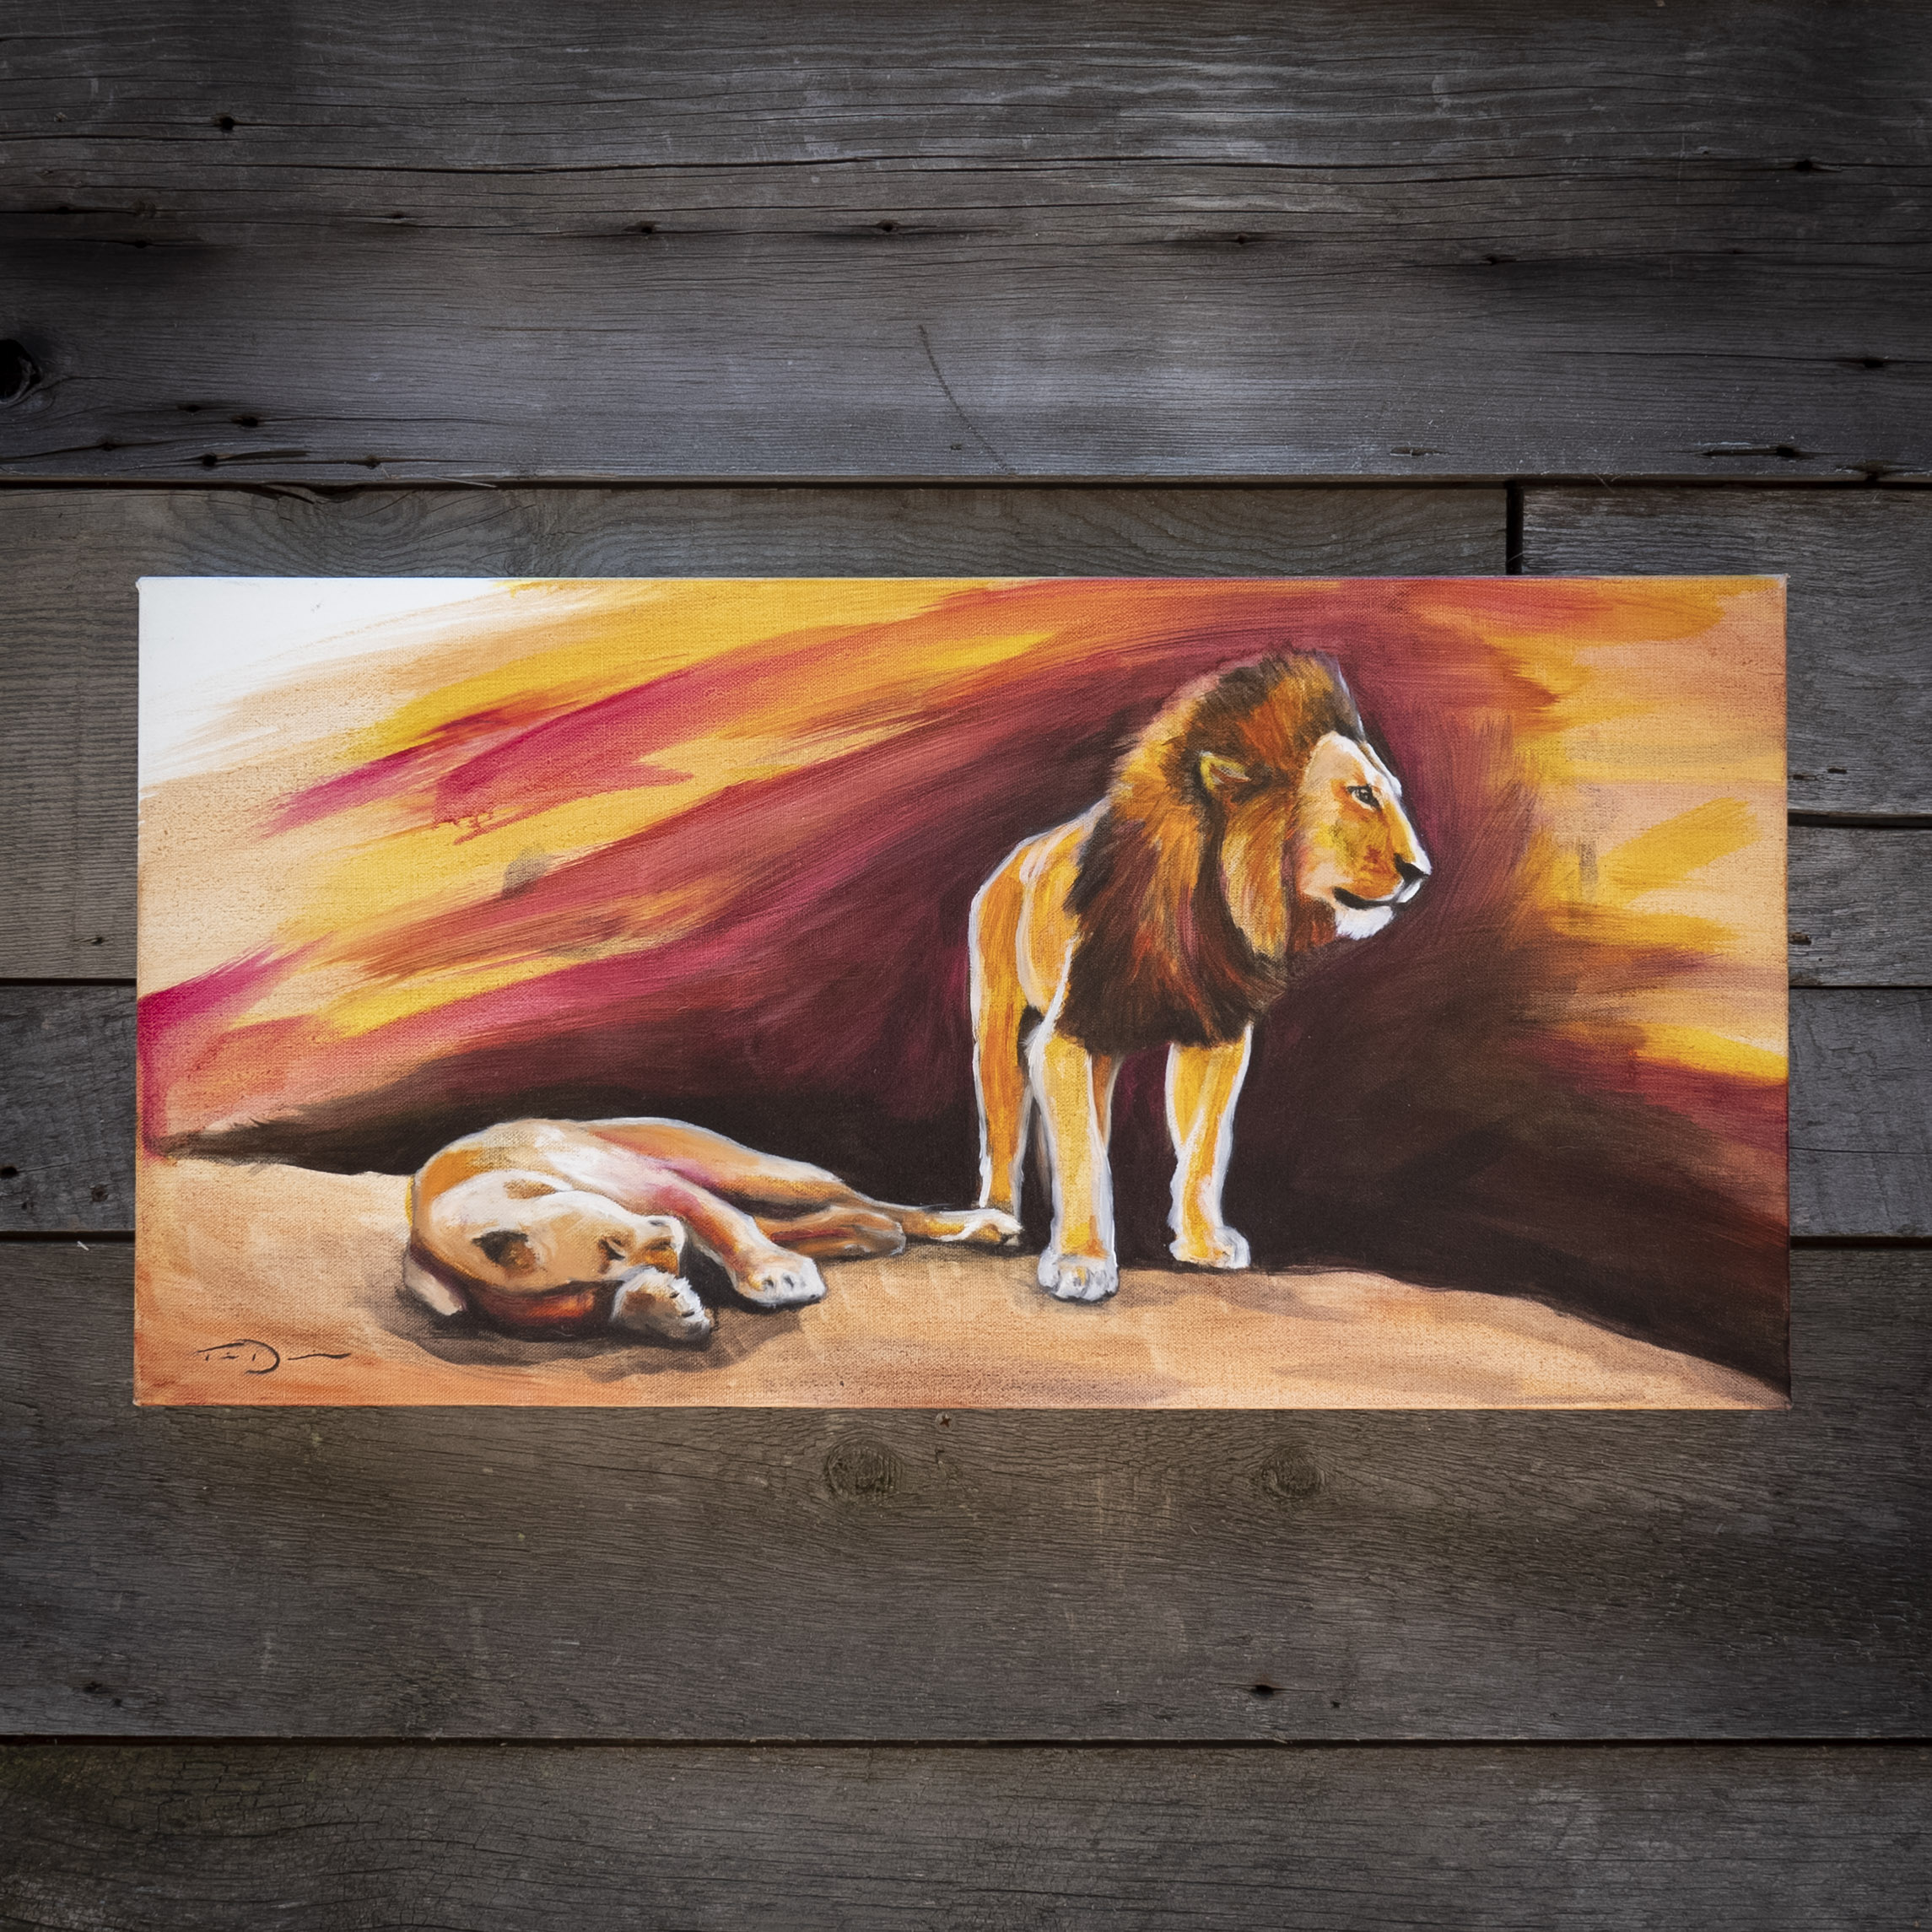 Lion Rock - Original oil painting by wildlife artist Timothy Davison of the Davison Art Company featuring a pair of mated lions on a rock in Kenya at sunset sunset, with purple, magenta, and orange. © COPYRIGHT TIMOTHY DAVISON